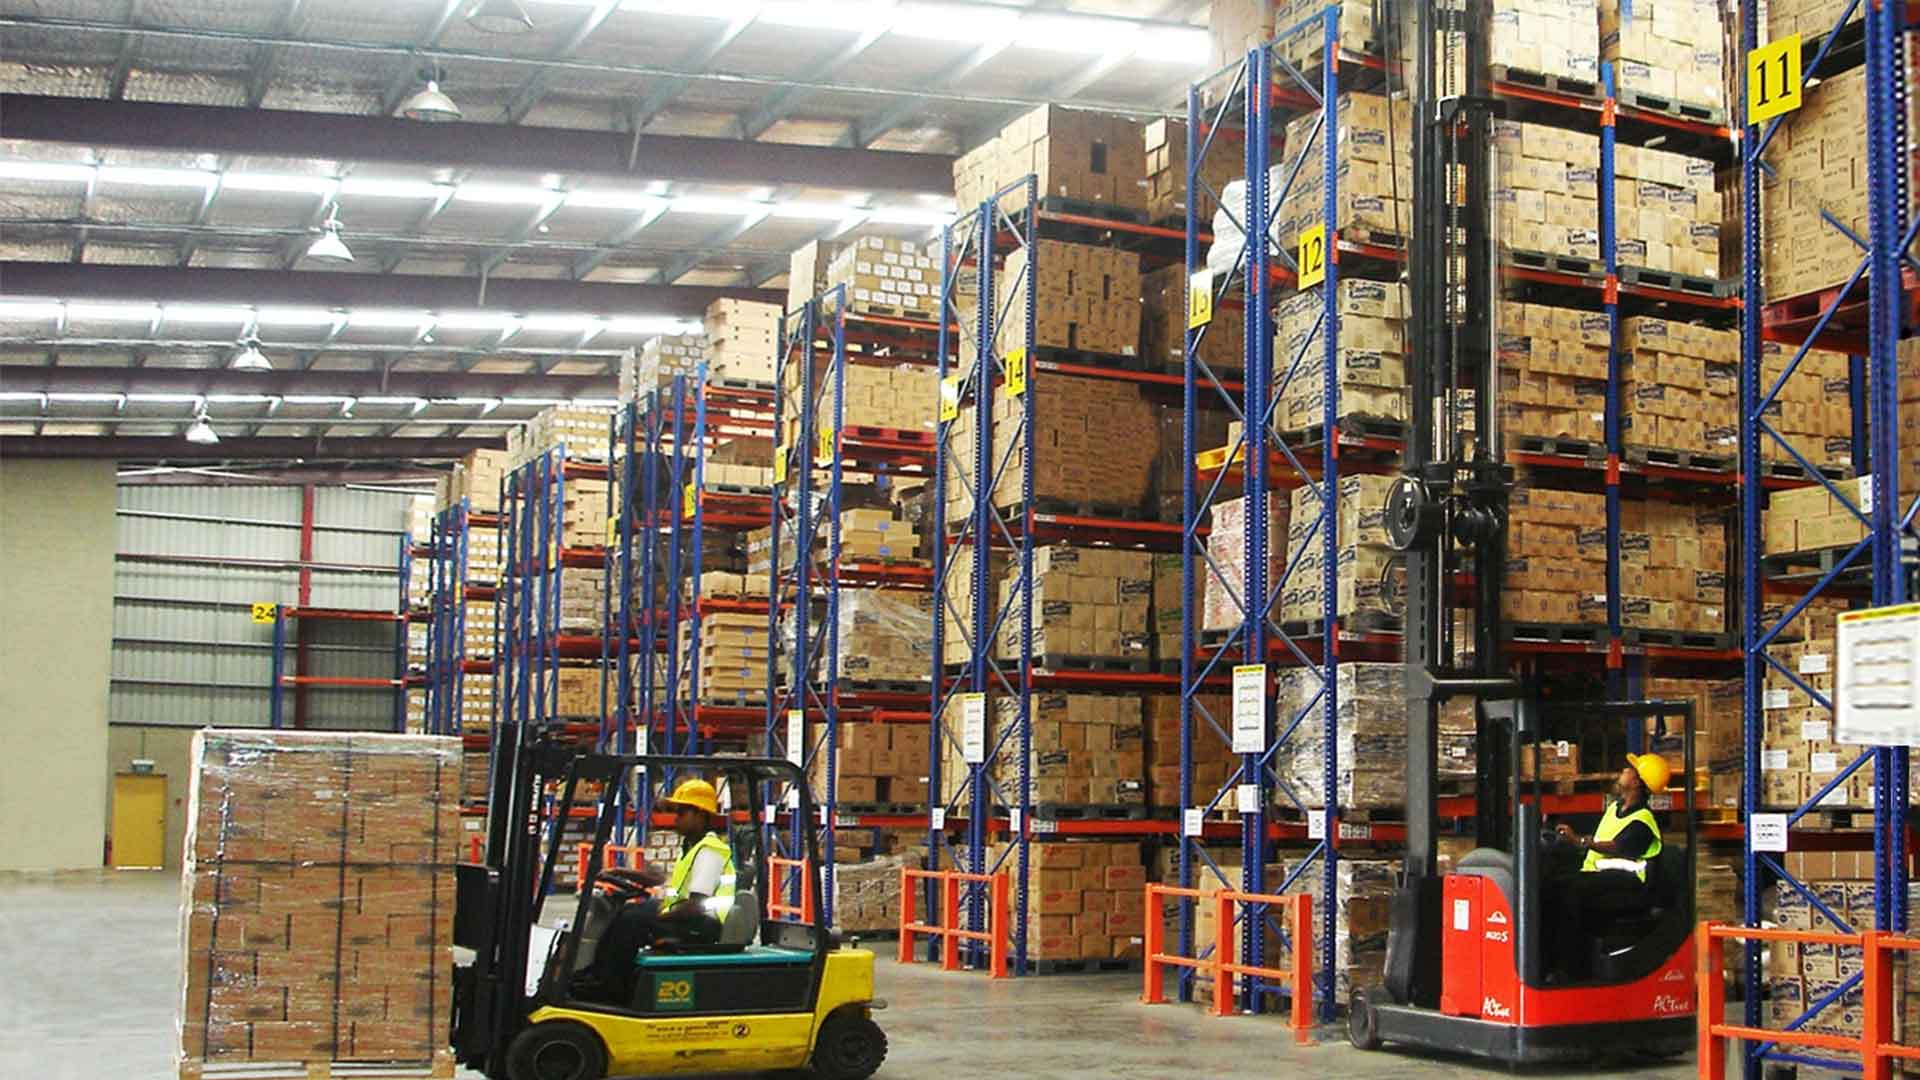 product packaging warehousing